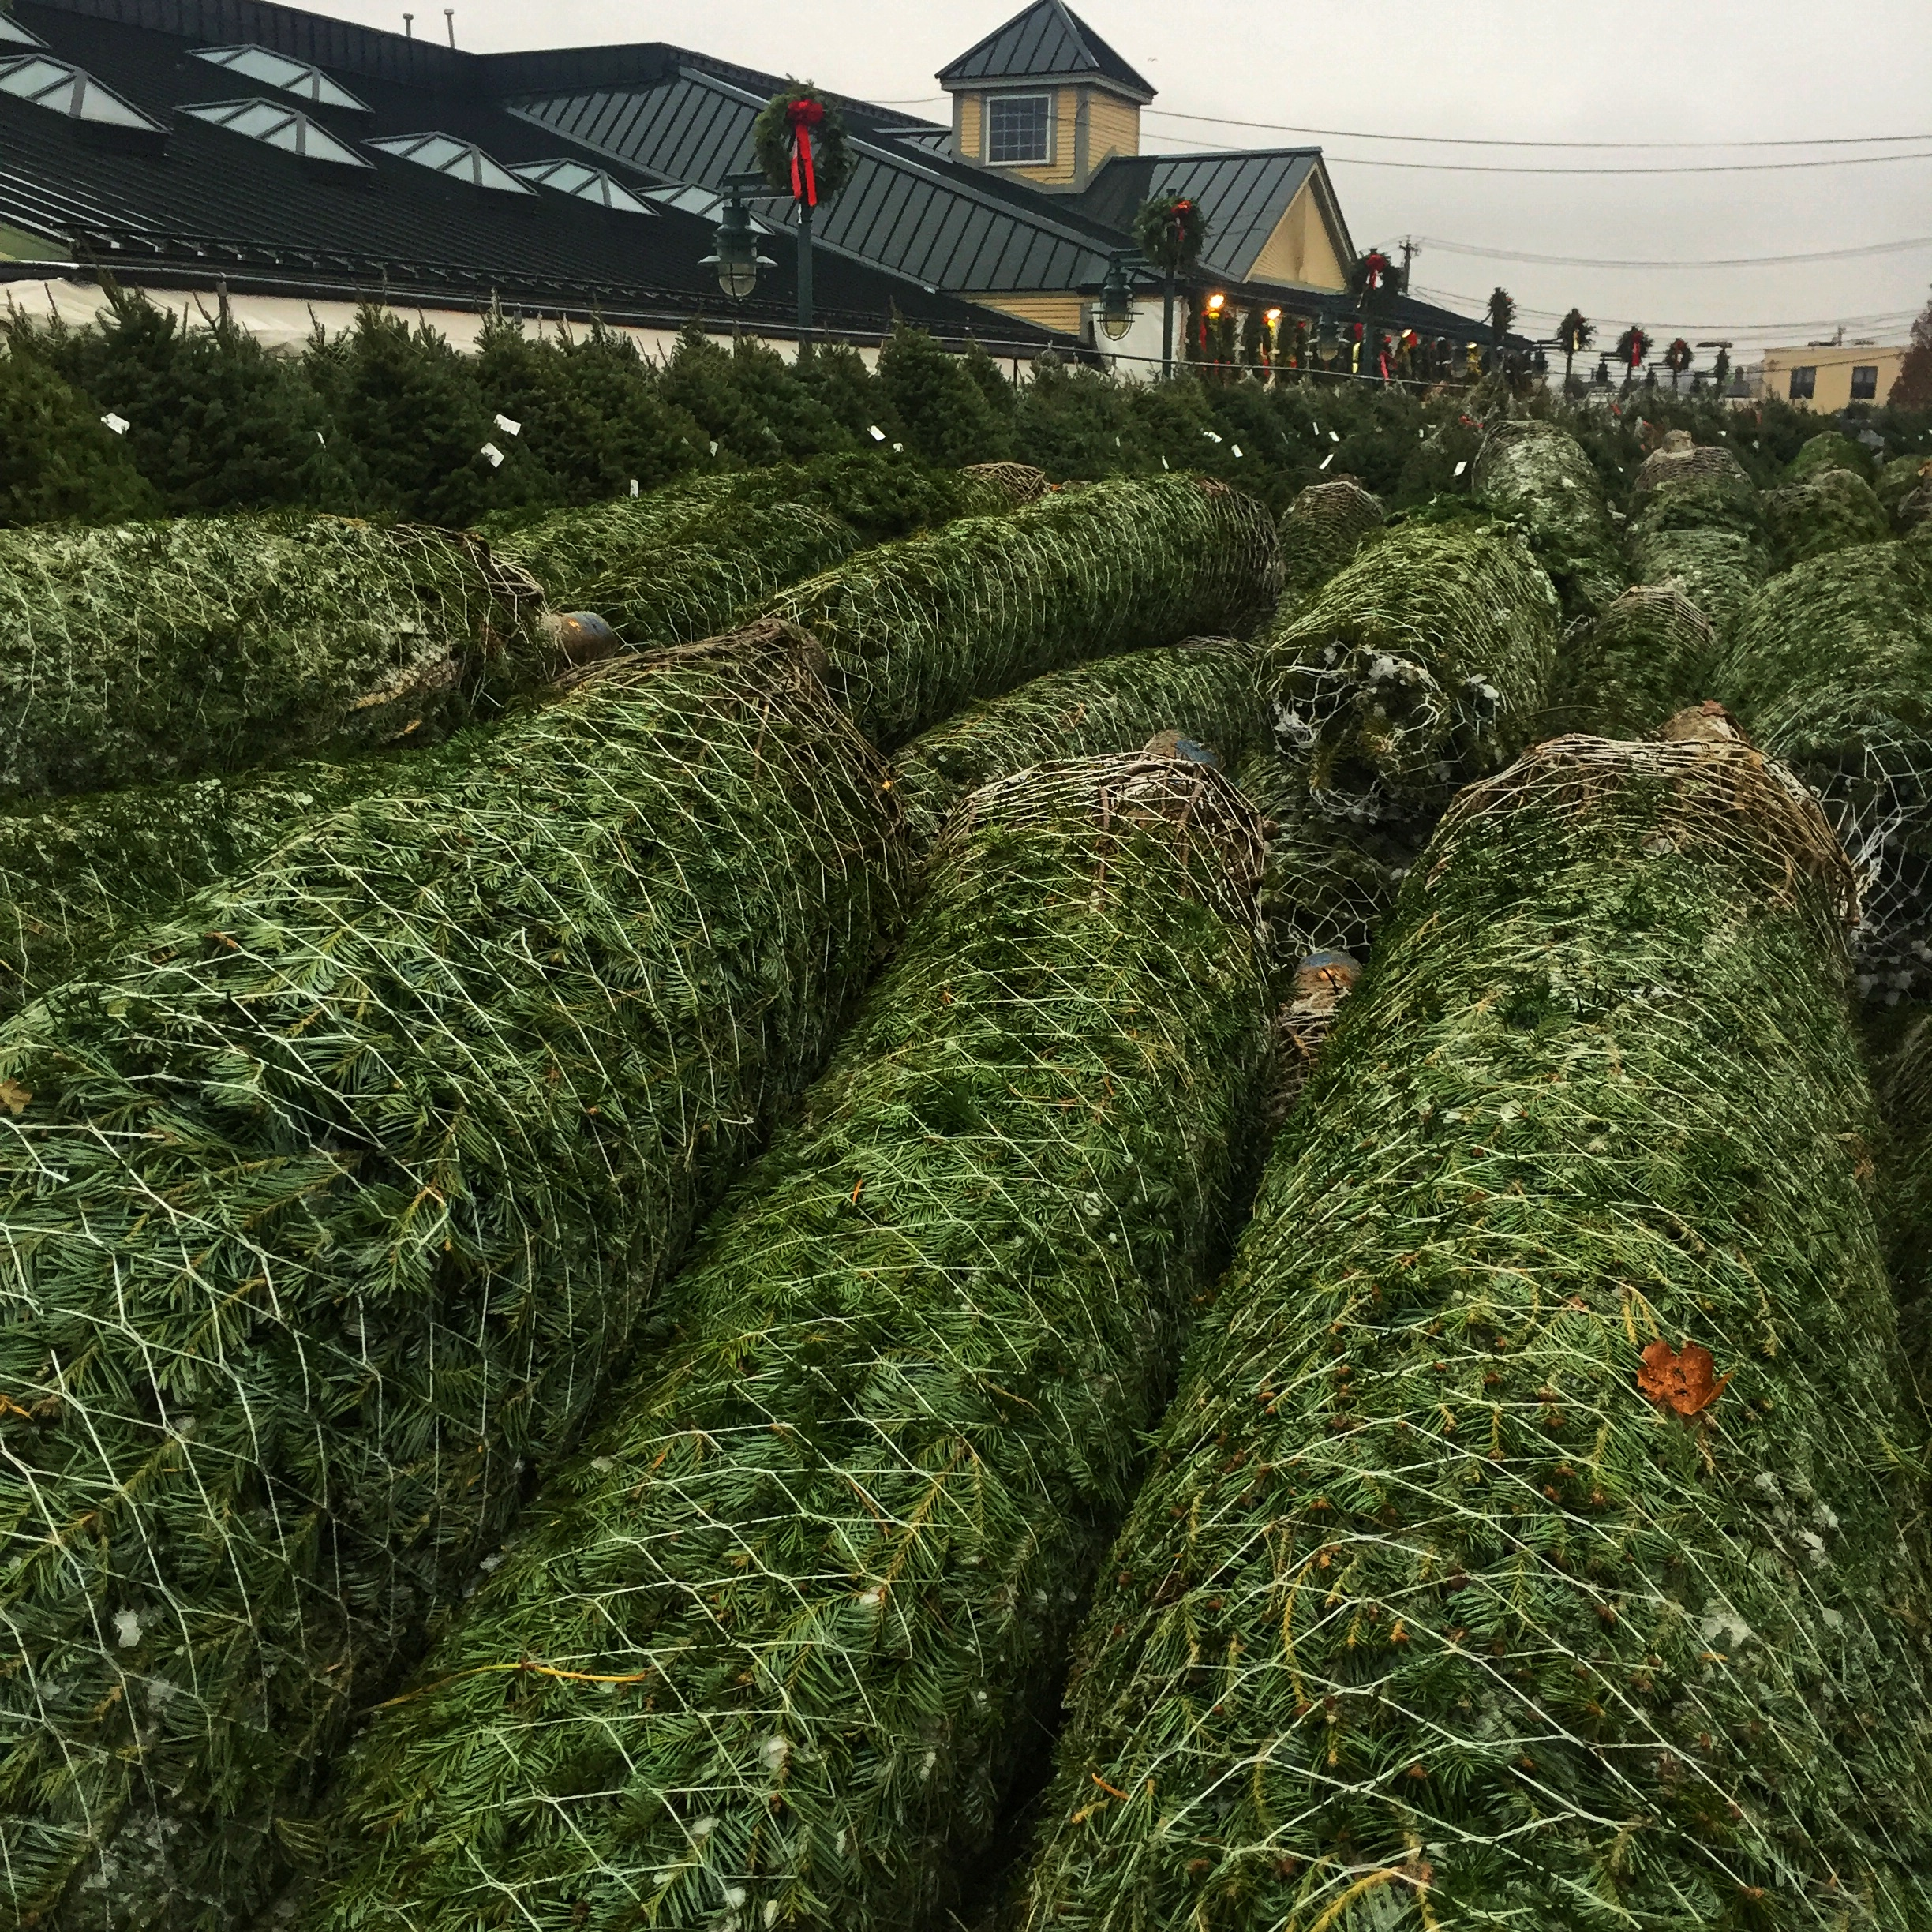 Christmas trees have arrived at Russo's